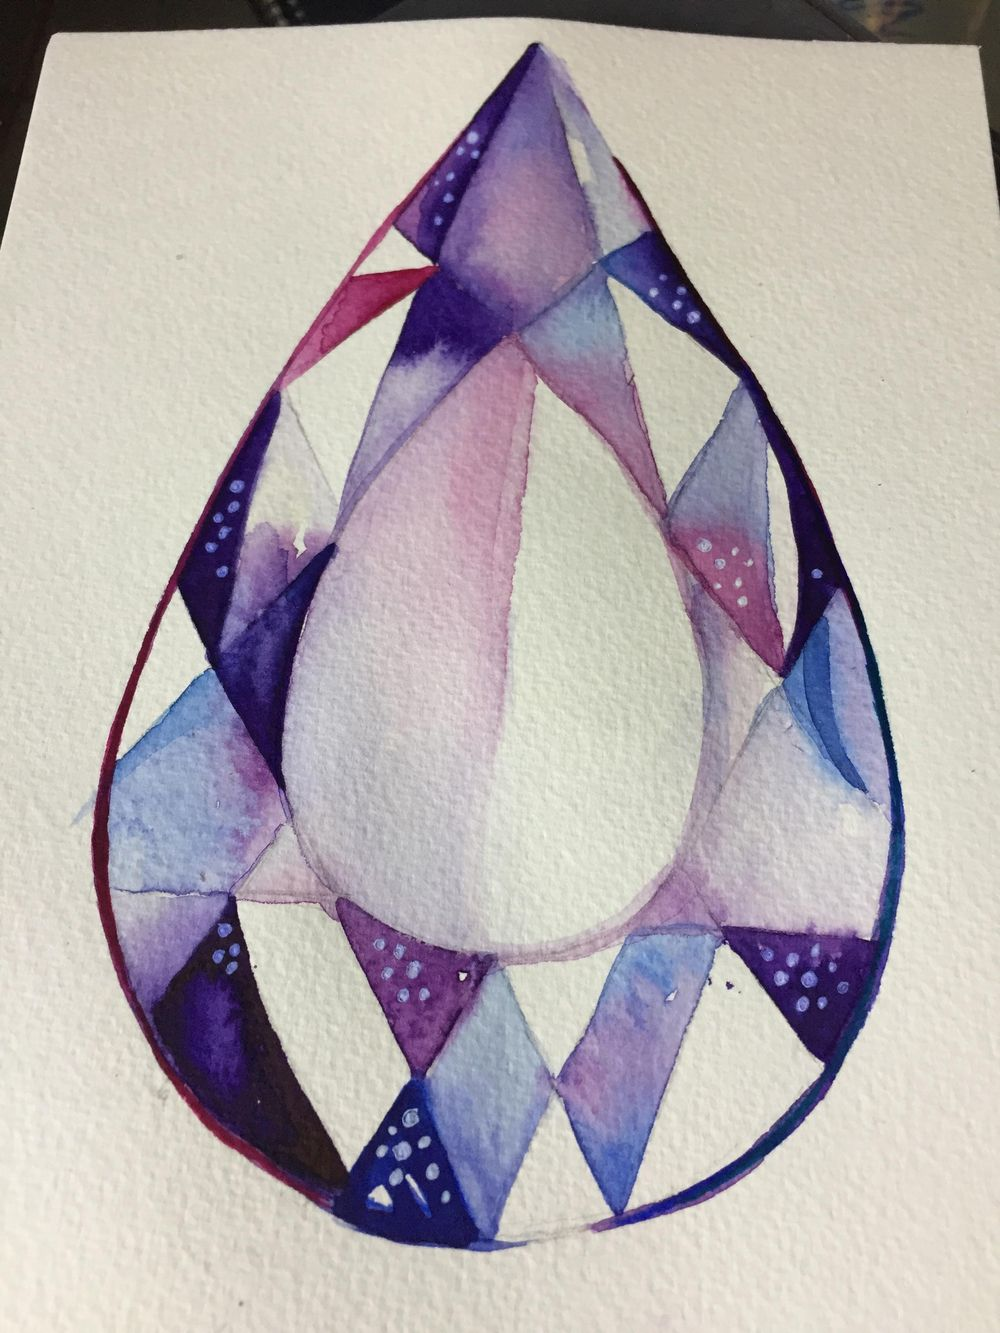 Crystals and Gems on my mind! . - image 1 - student project